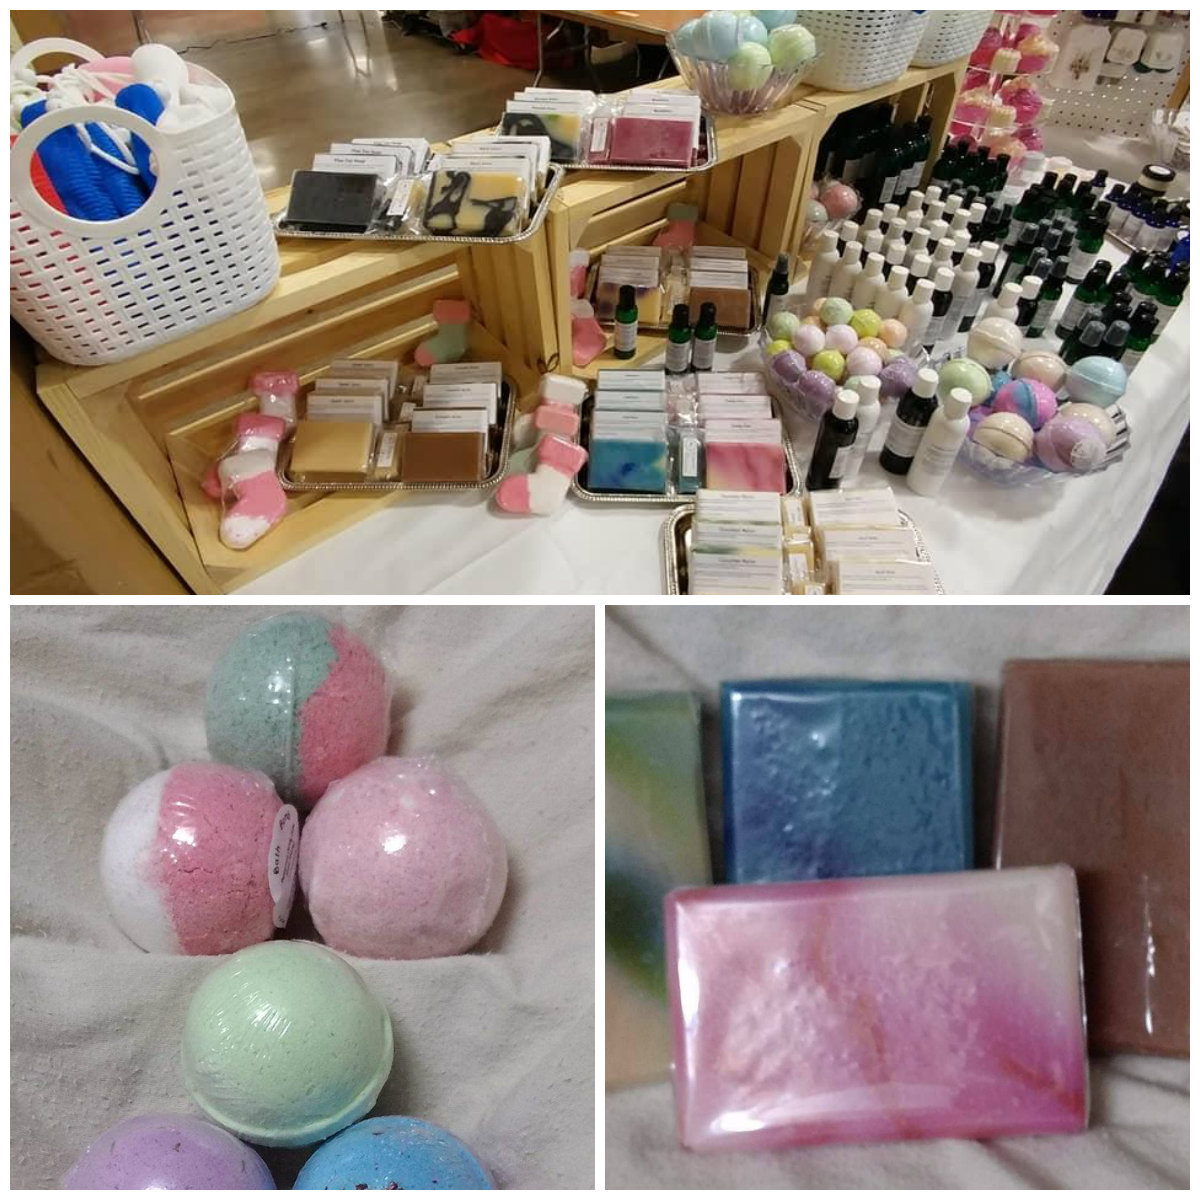 Mother Creations   Mother Creations is a large group of crafters with over 120 years combined experience that make a variety of items. https://www.facebook.com/1MotherCreationmaking, bath bombs, shampoo, castile soap, bath soaks, and nearly anything to get you clean. We make our own essential oil blends- for cleaning, and beautiful scents. We make jewelry and beaded items, including pearl knotting and beaded ornaments. We offer soy candles and turned wood items for household use and home decor. We are also the home of Grandma's Kitchen Butters, Jams, and Jellies. Grandma's focuses on using as much local produce as possible and is home to a hard to find dandelion jelly. Our talents include: soap Contact information:  Crystal Morgan PO Box 242 Mascot, TN 37806  865-257-7107  MotherCreation18@gmail.com   www.mothercreations.com    https://www.facebook.com/1MotherCreation